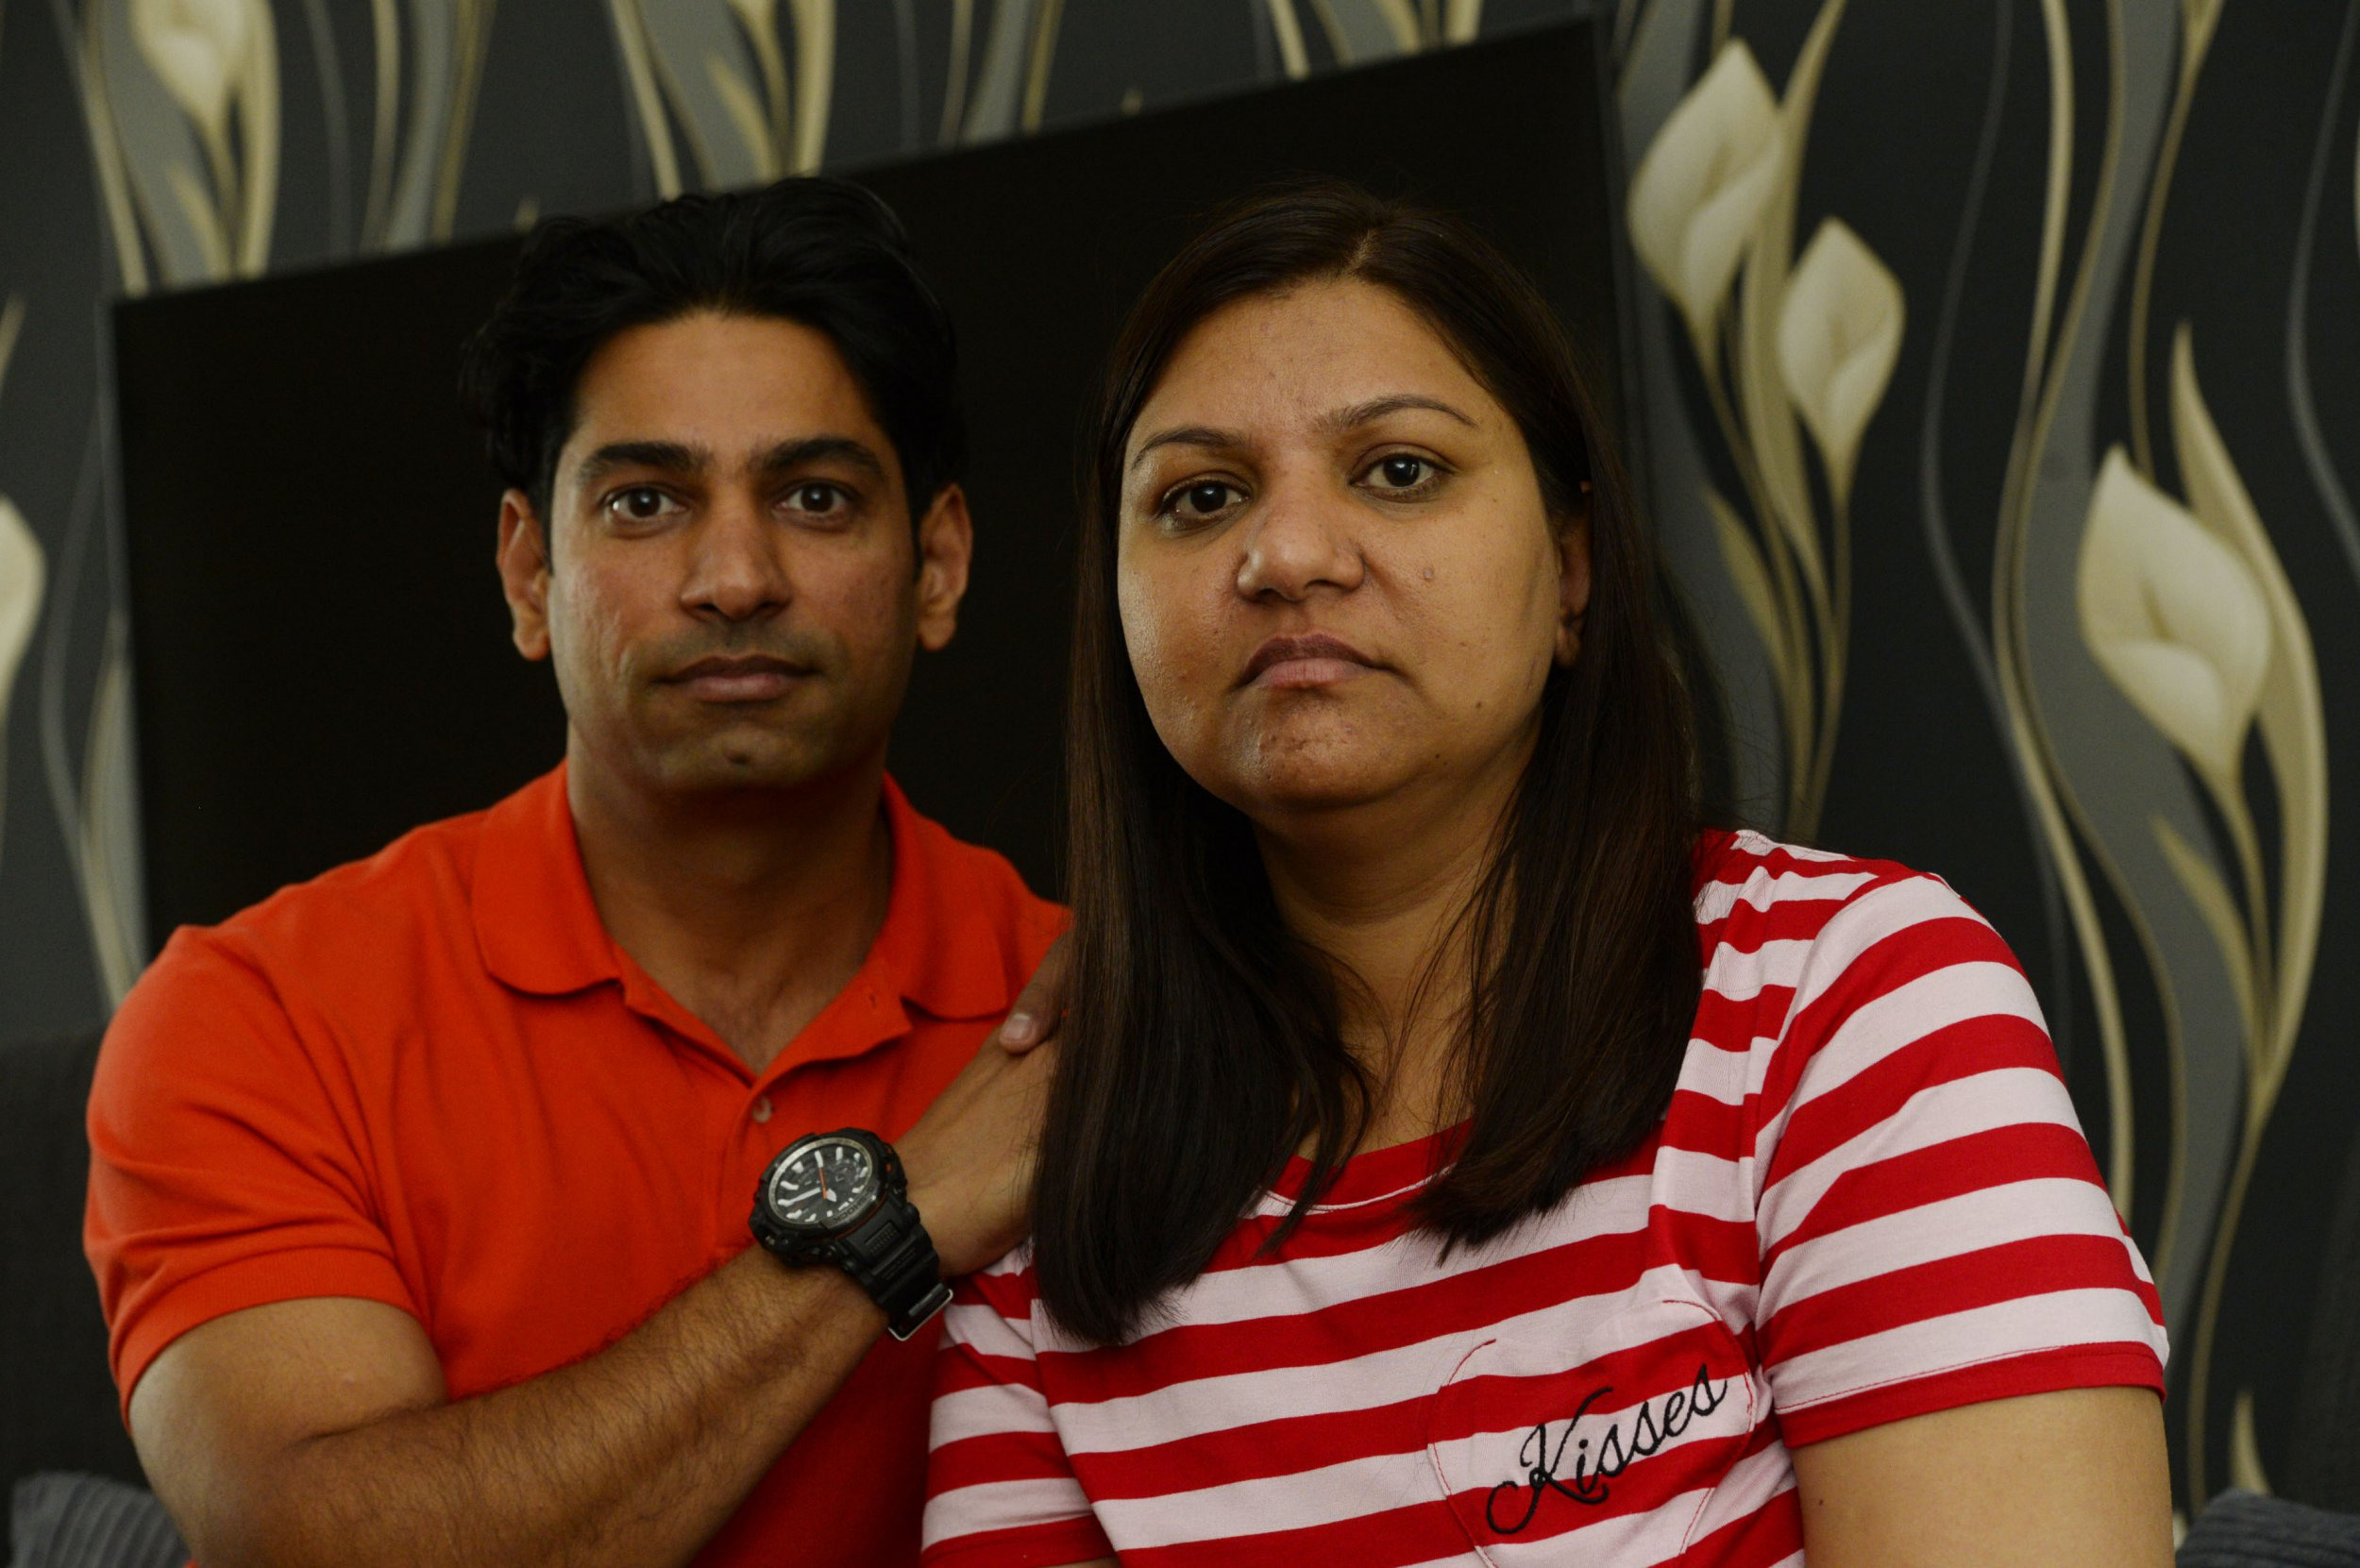 Ram Kumar Singh and his wife Sunaina who have put stickers on their cars advertising for a new kidney donor for her as she's had the transplant operation cancelled twice and is currently having dialysis three times a week.